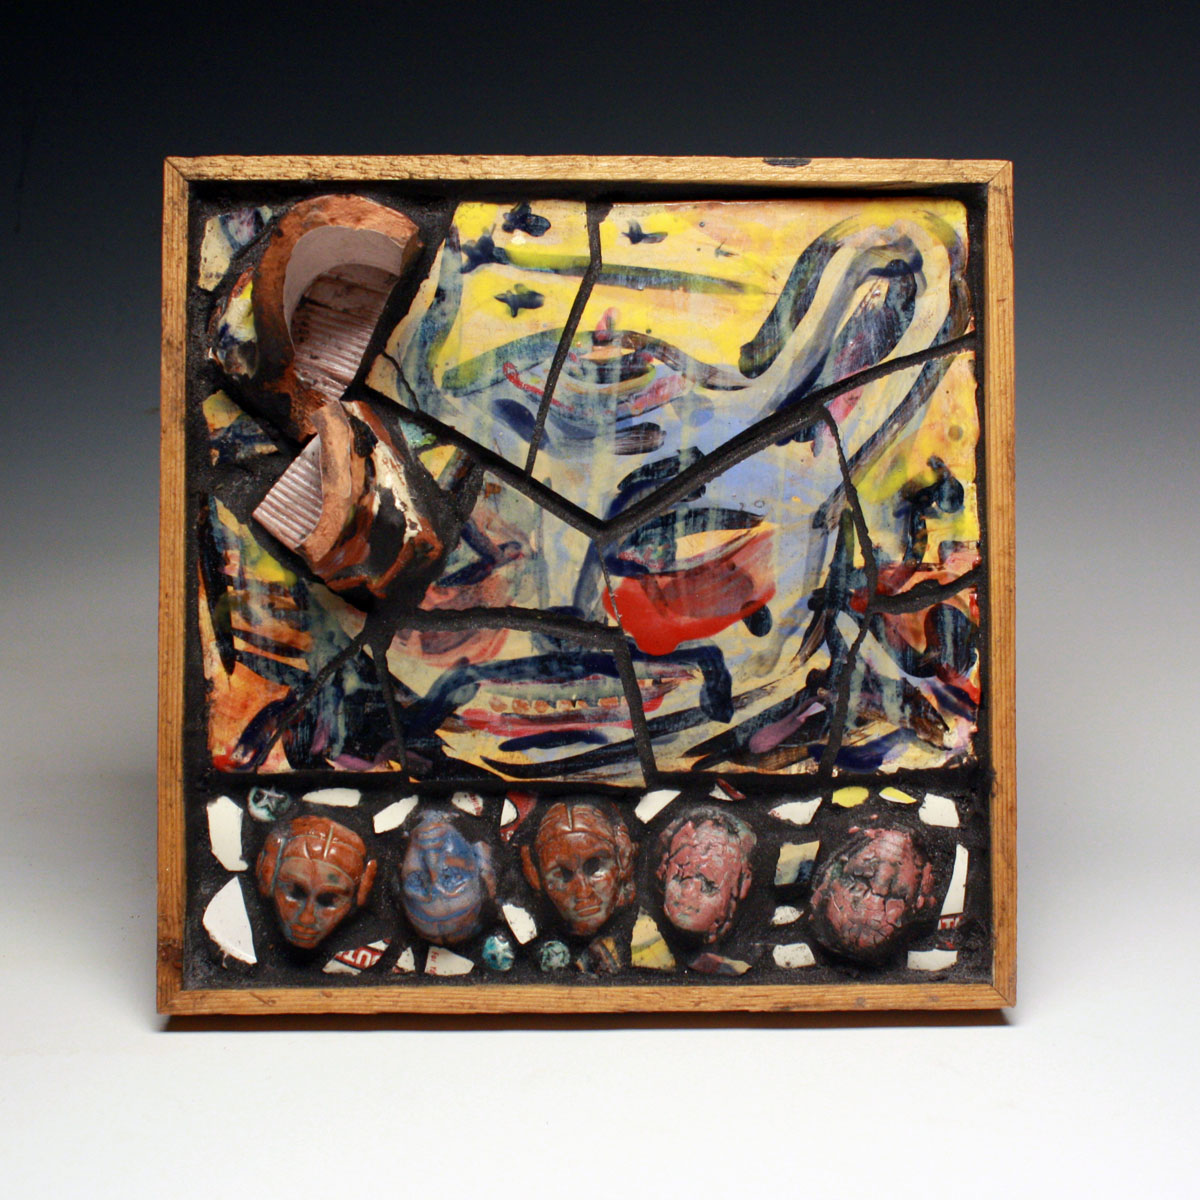 """It's Very Unclear I Hear AKA What Don Reitz saw at the circus made Ken Ferguson sick and Kirk Mangus jump for joy, by Christopher Leonard, 12""""H x 12""""L x 4""""D,  Ceramic tile, sprigs, and smashed pot fragments formed/forced/coerced into a mysterious mosaic nestled inside of a scrap wood frame. , 2016"""